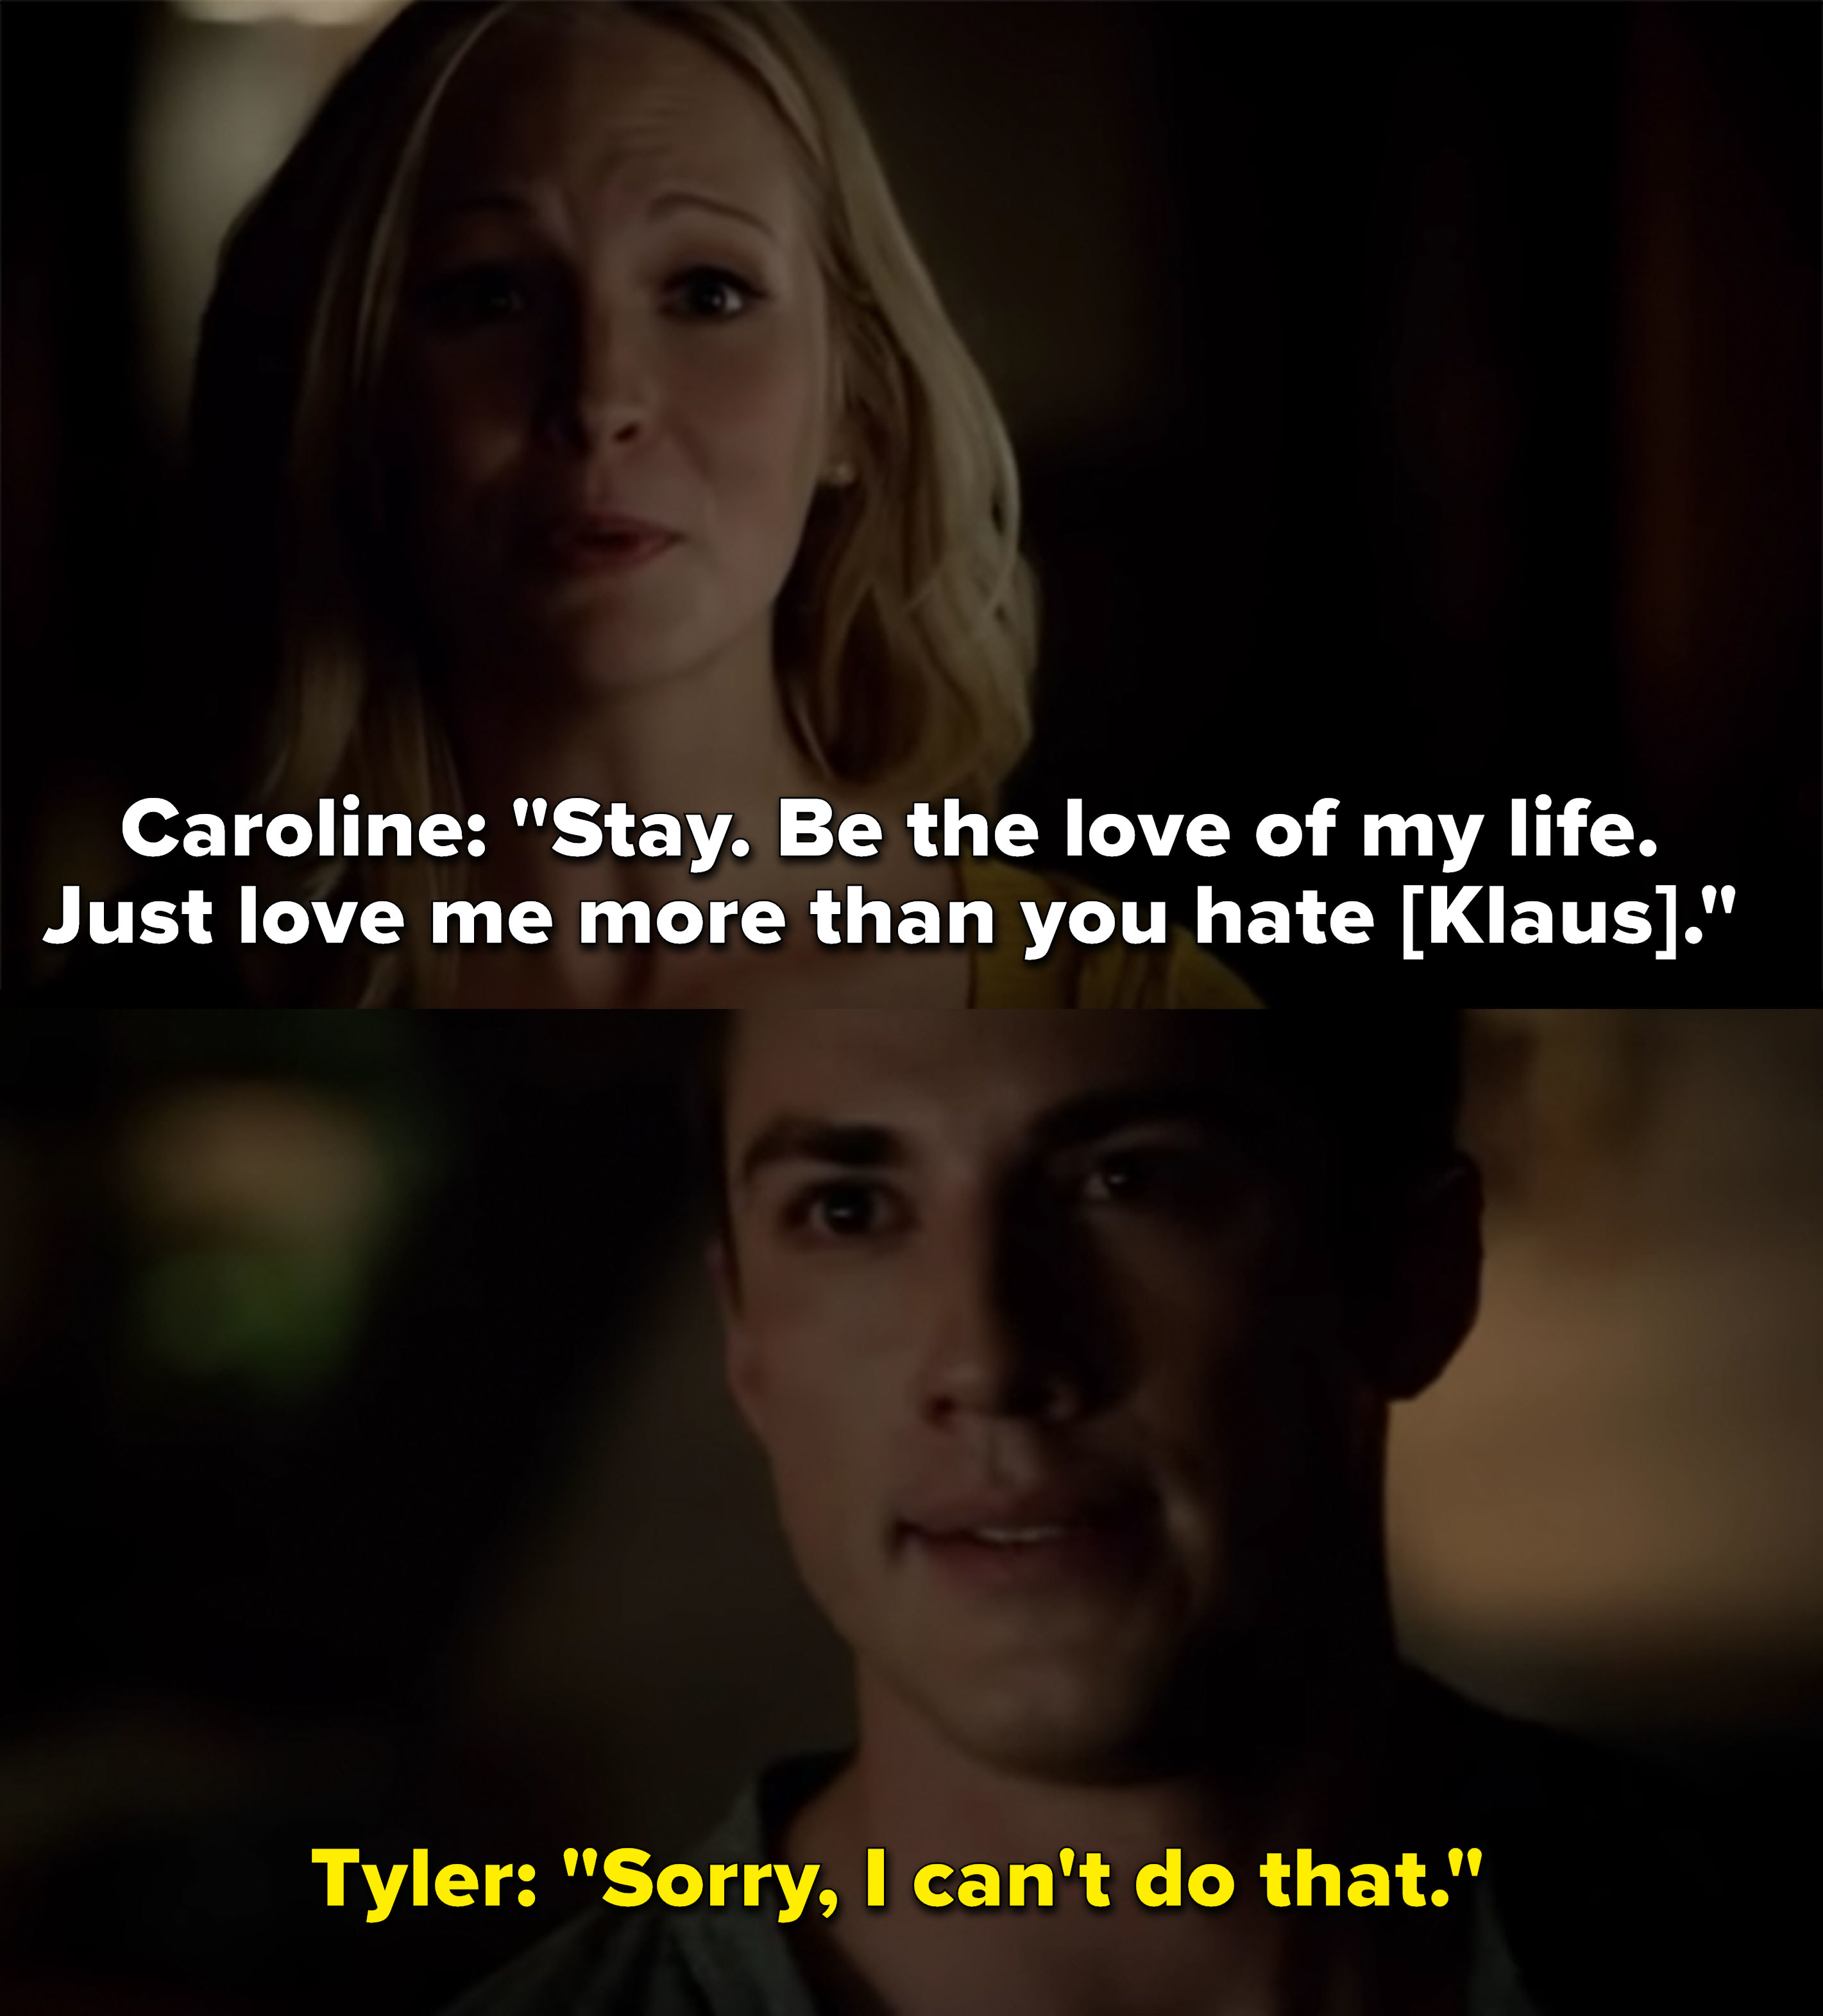 Tyler leaves Caroline because he can't love her more than he hates Klaus